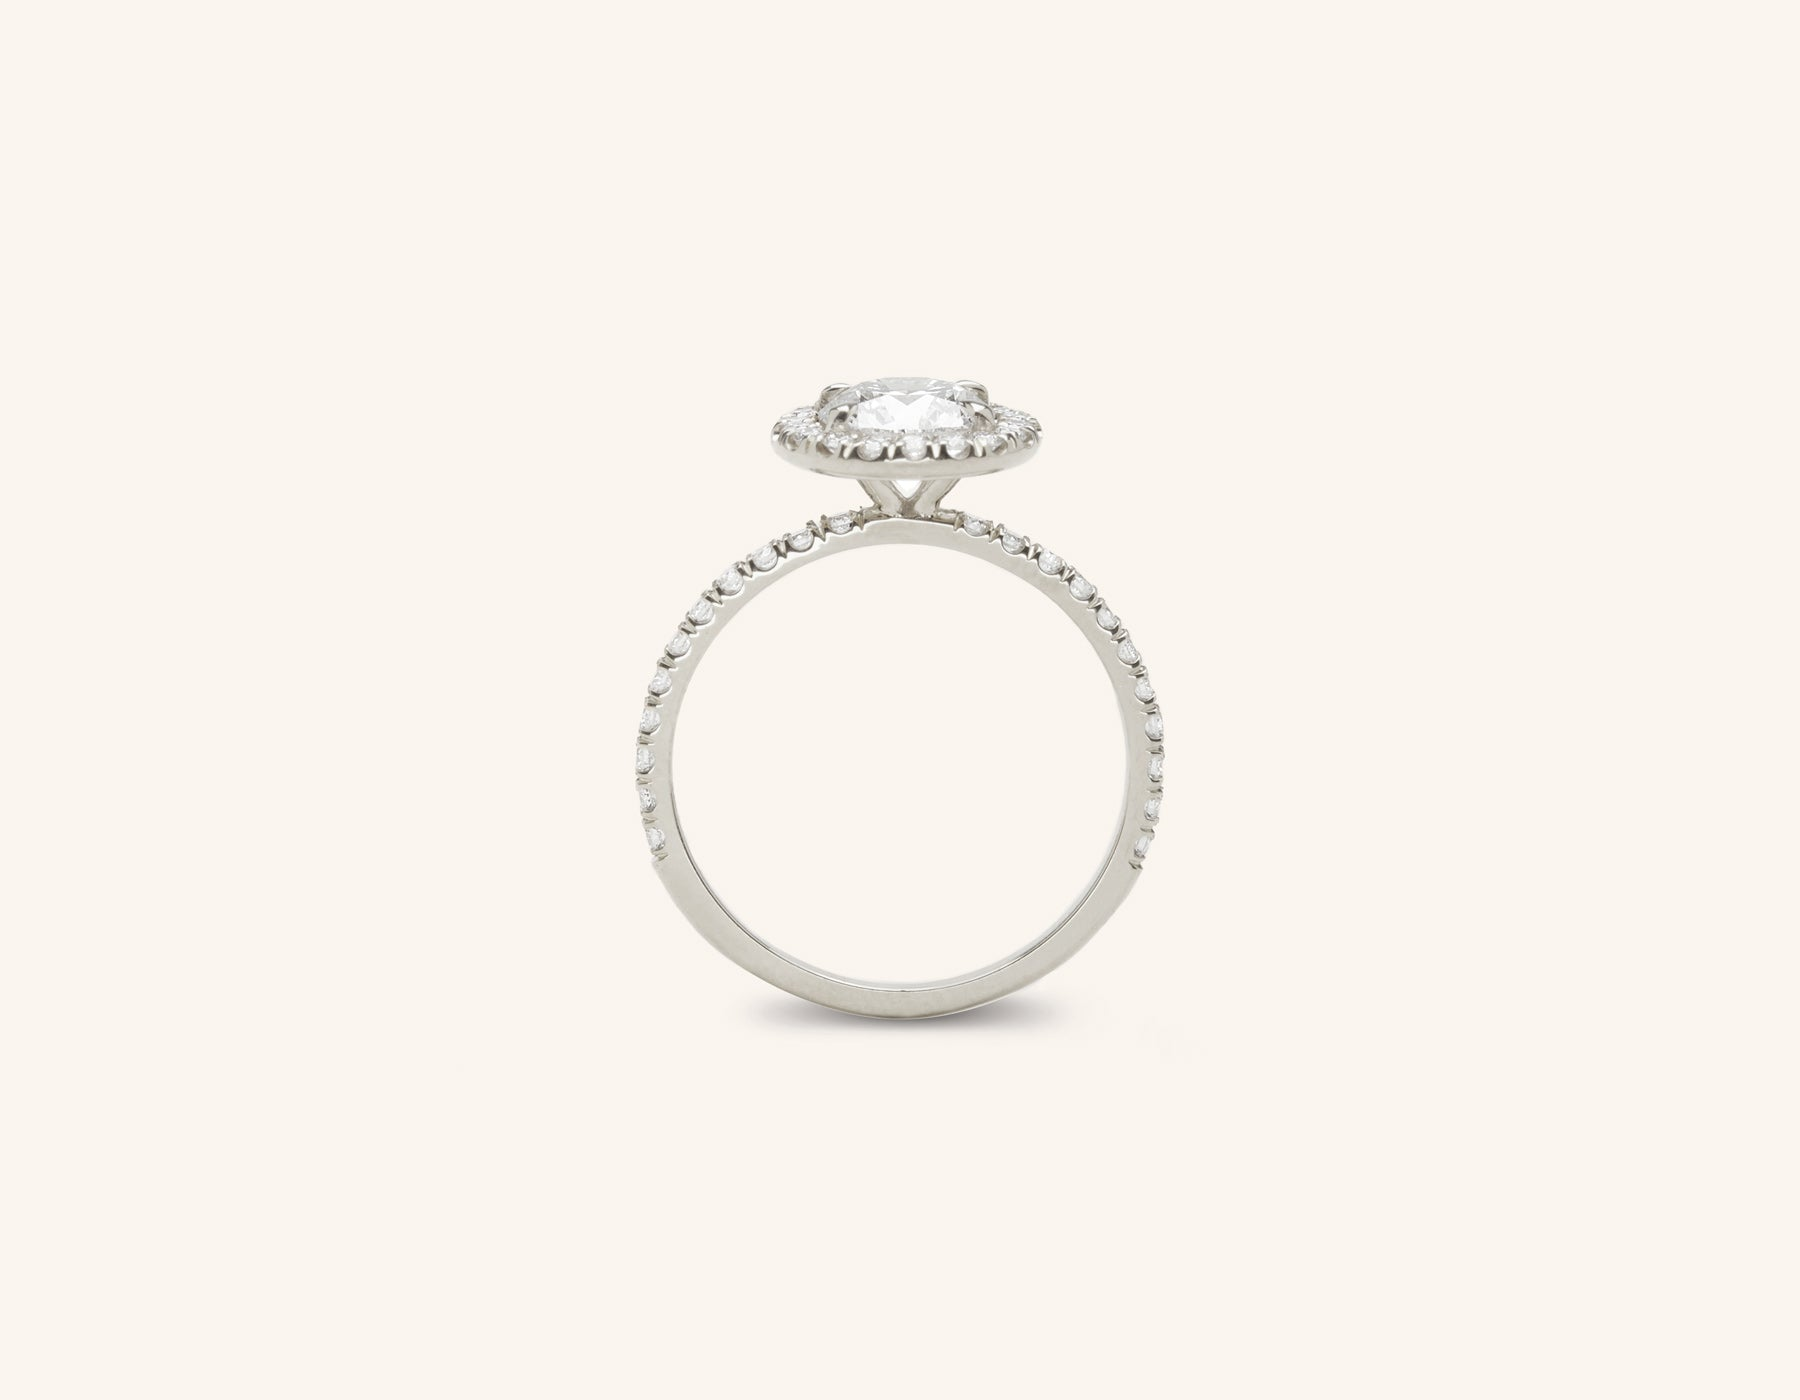 Vrai and Oro classic The Halo diamond pave engagement ring platinum sustainable jewelry